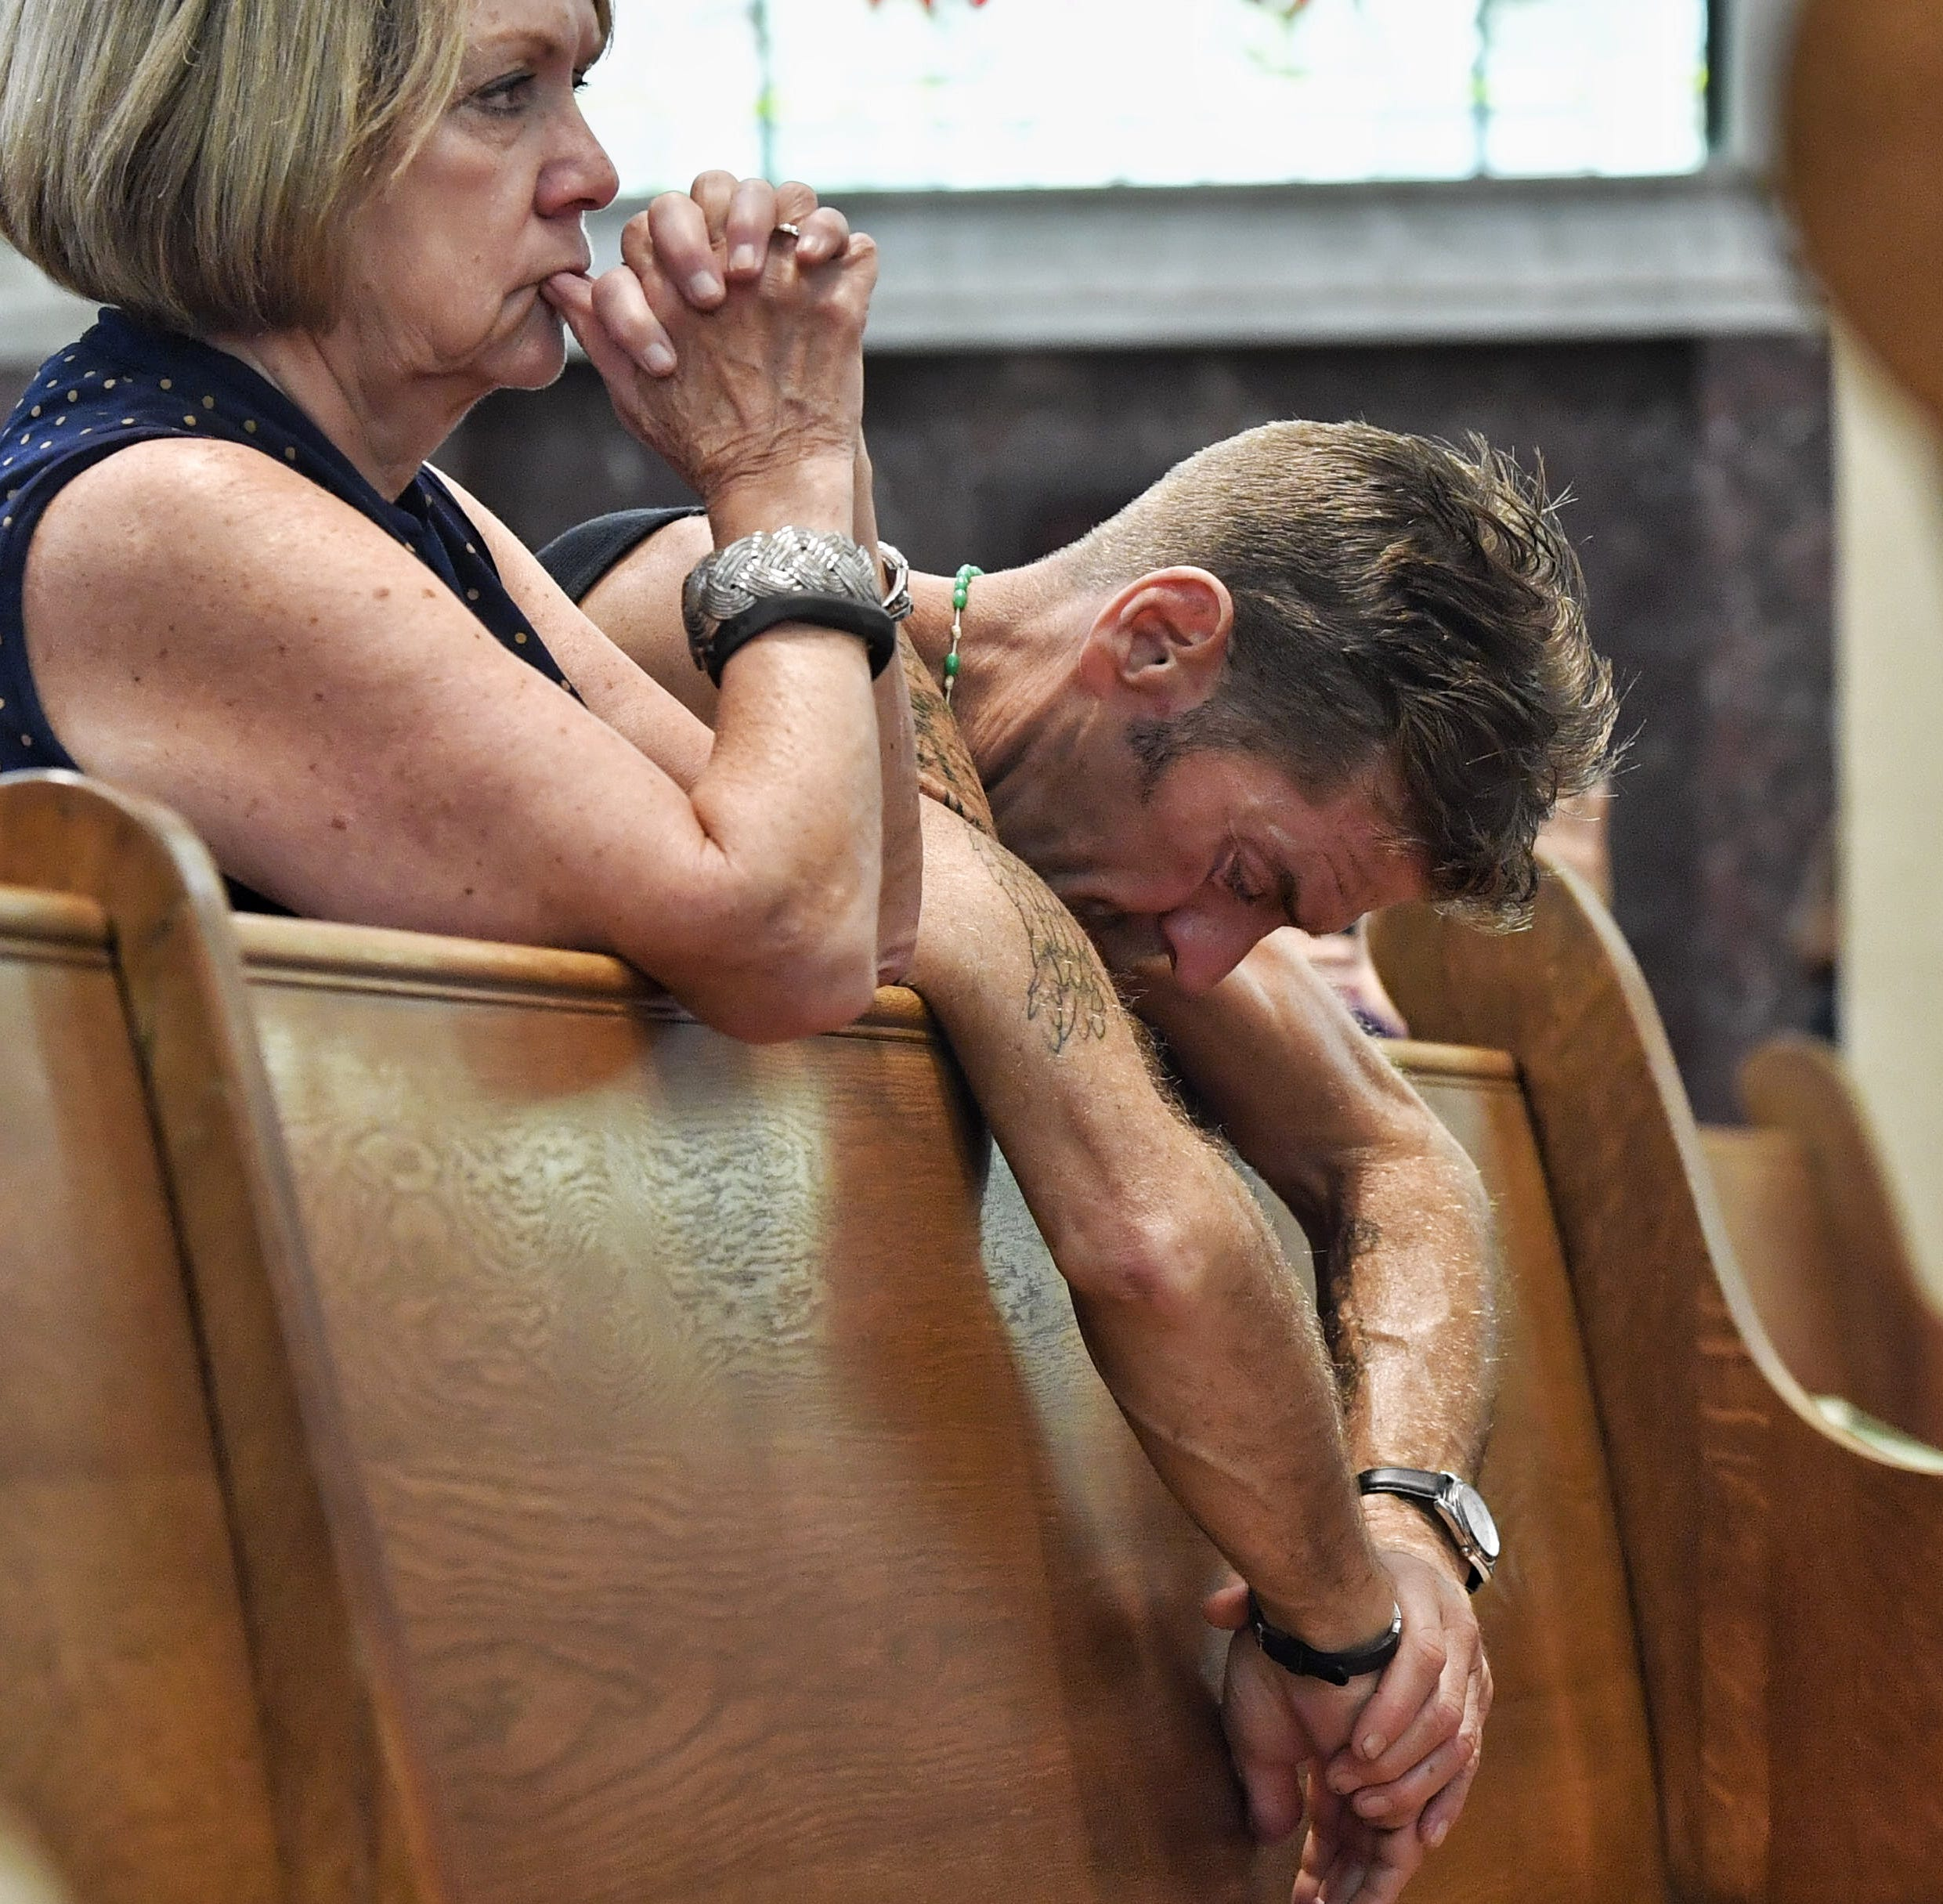 A parishioner prays during communion at the 'Mass of Forgiveness' at the Cathedral Parish of Saint Patrick in Harrisburg on Friday.